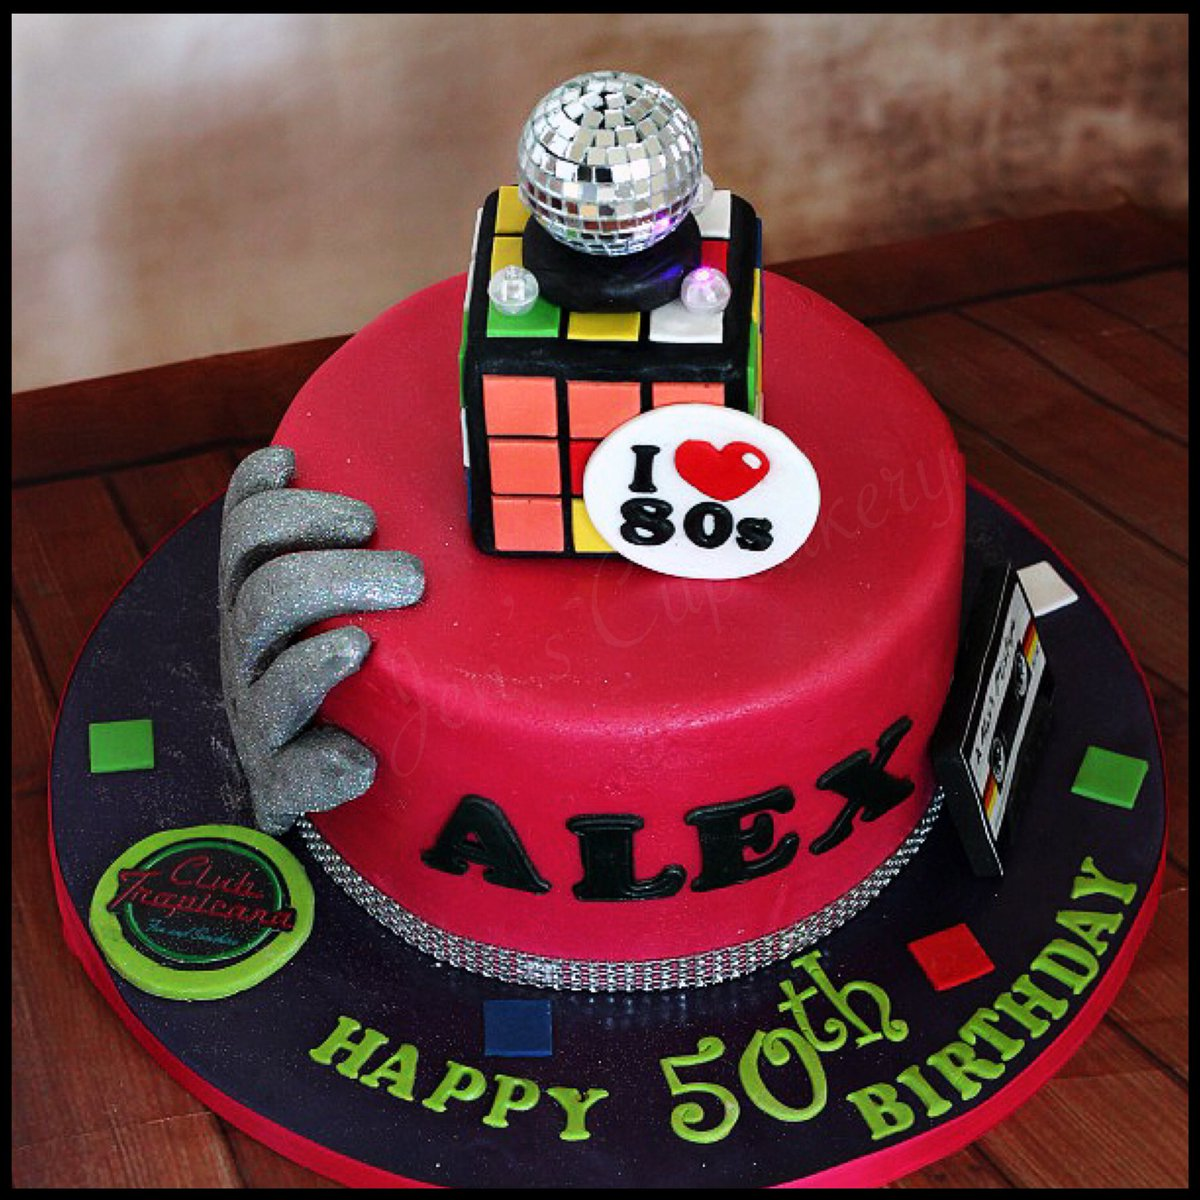 JenJensCupcakery On Twitter 80s Themed Birthday Cake 80s Disco